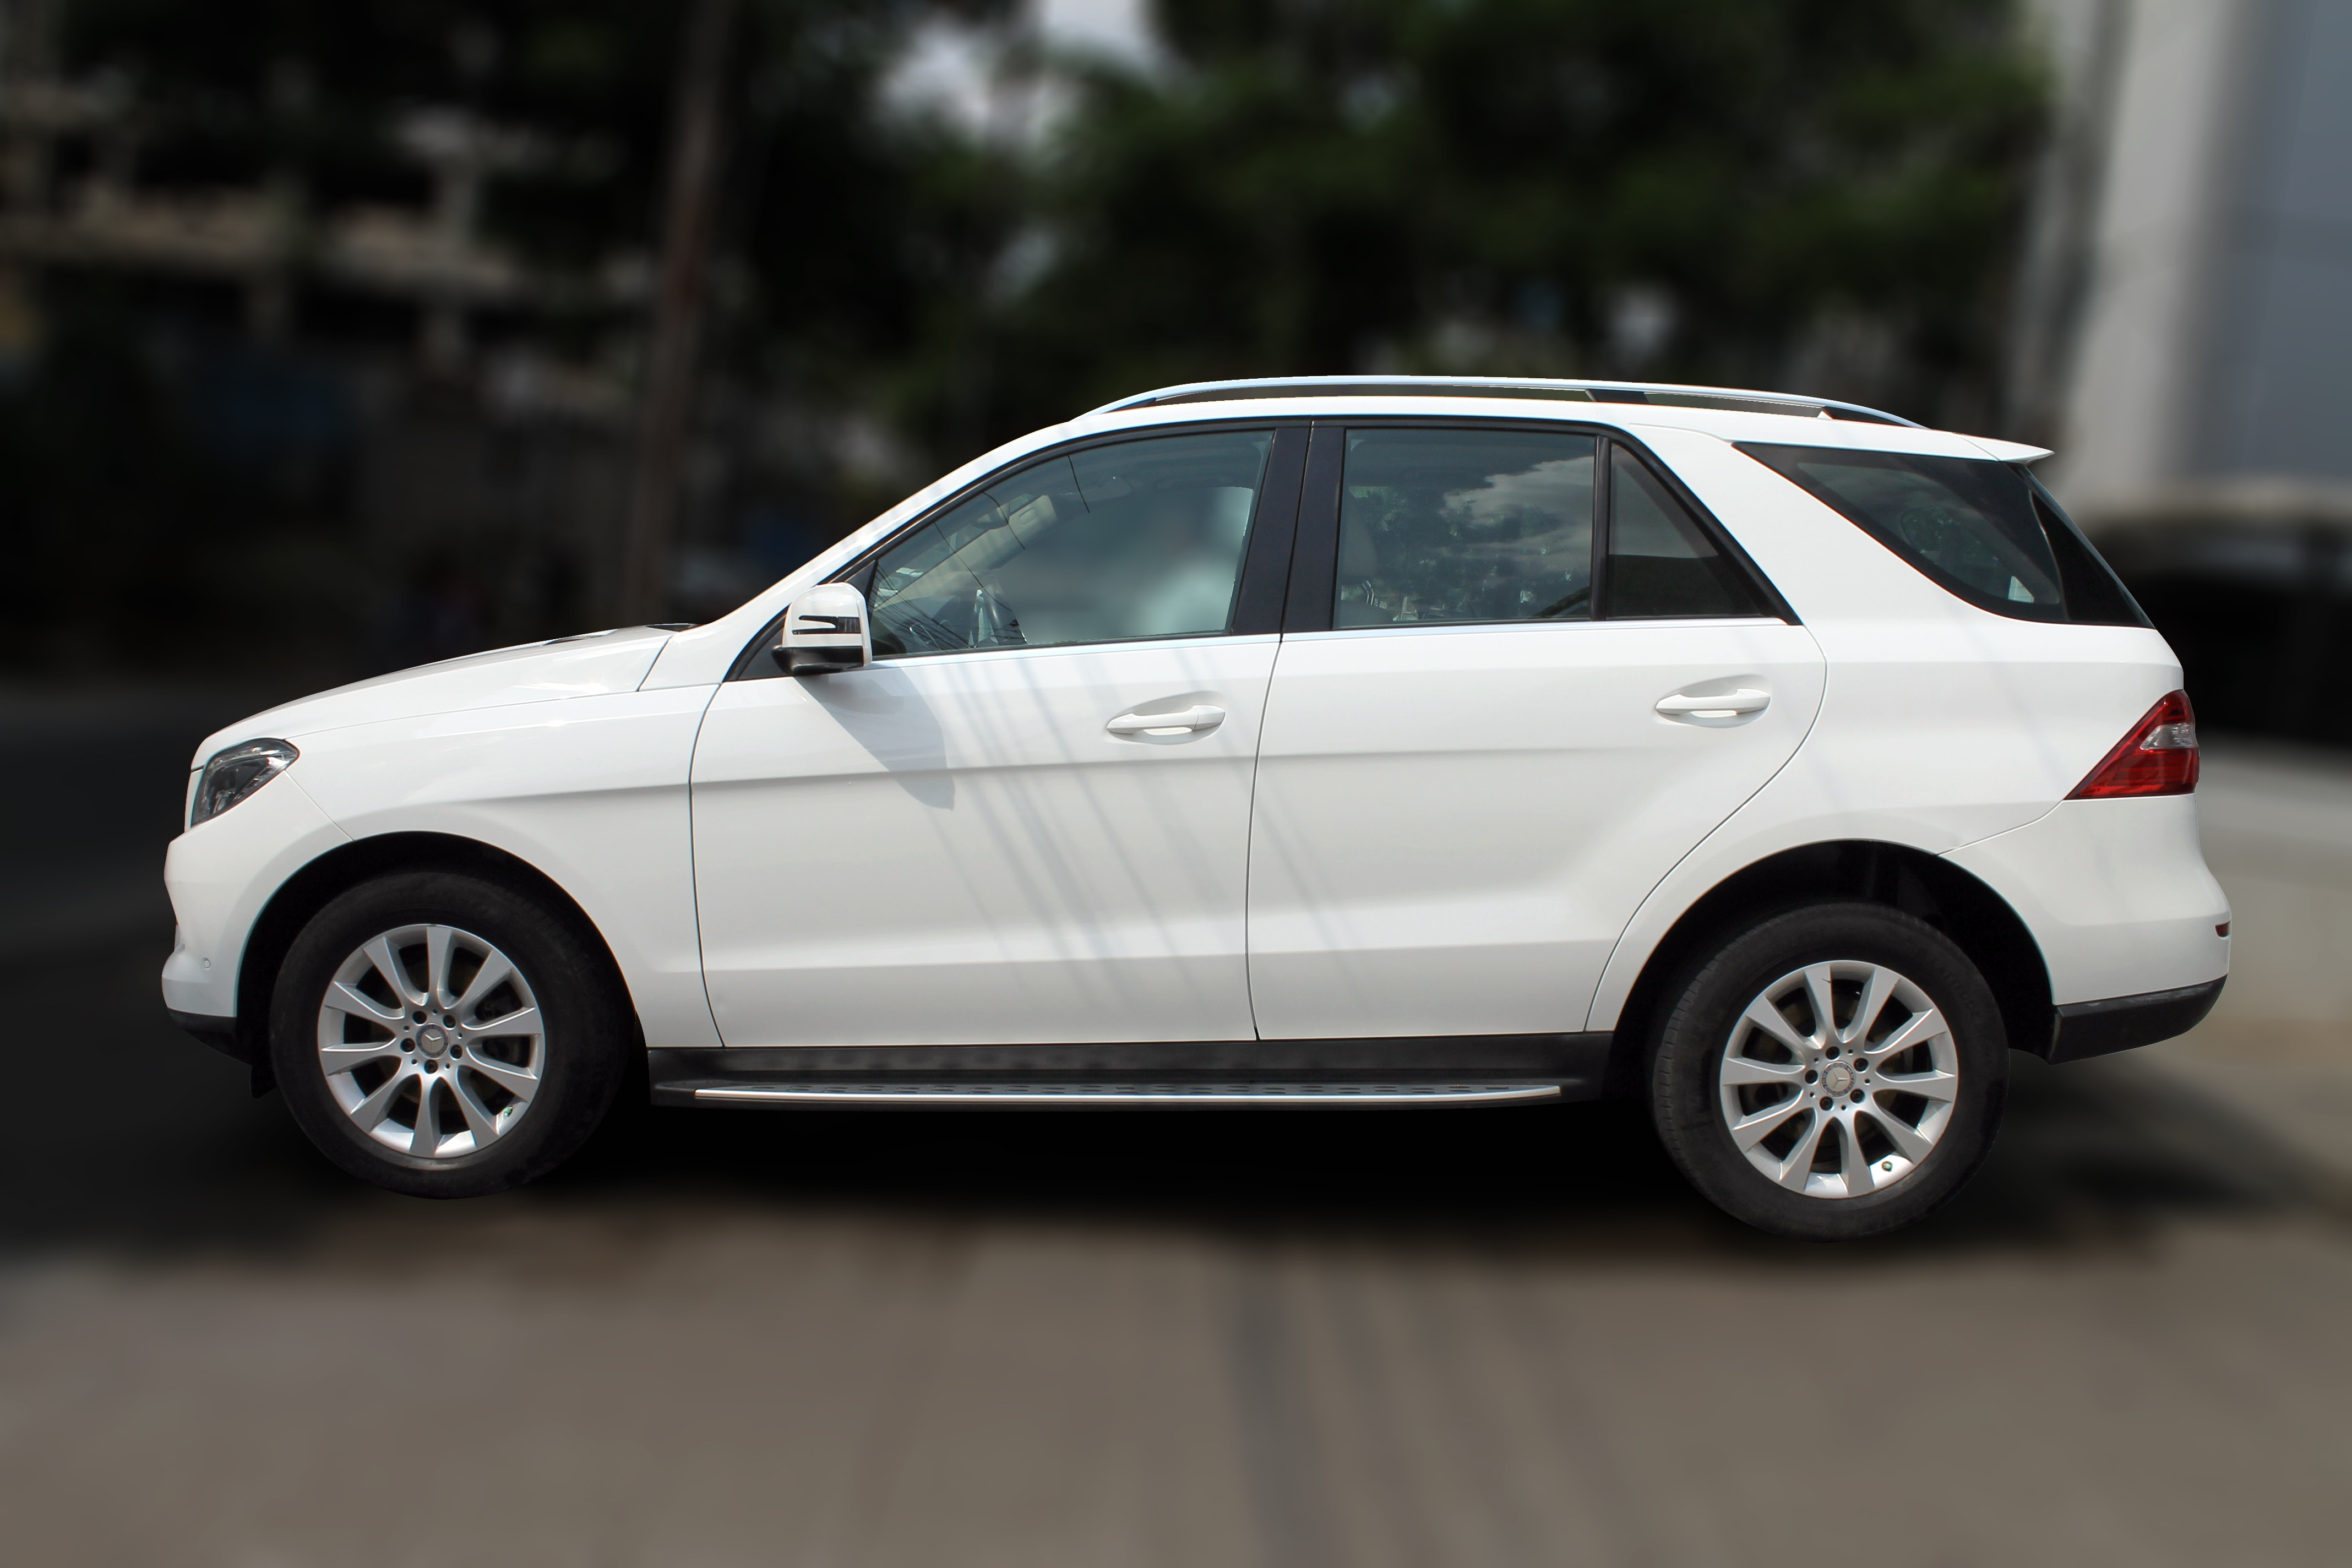 MERCEDES BENZ ML250 CDI (POLAR WHITE COLOR, DIESEL), 2014 in absolute mint condition... buy now and get one year servicepack from us. For further info call 7569696666. Visit us @ www.vasantmotors.in